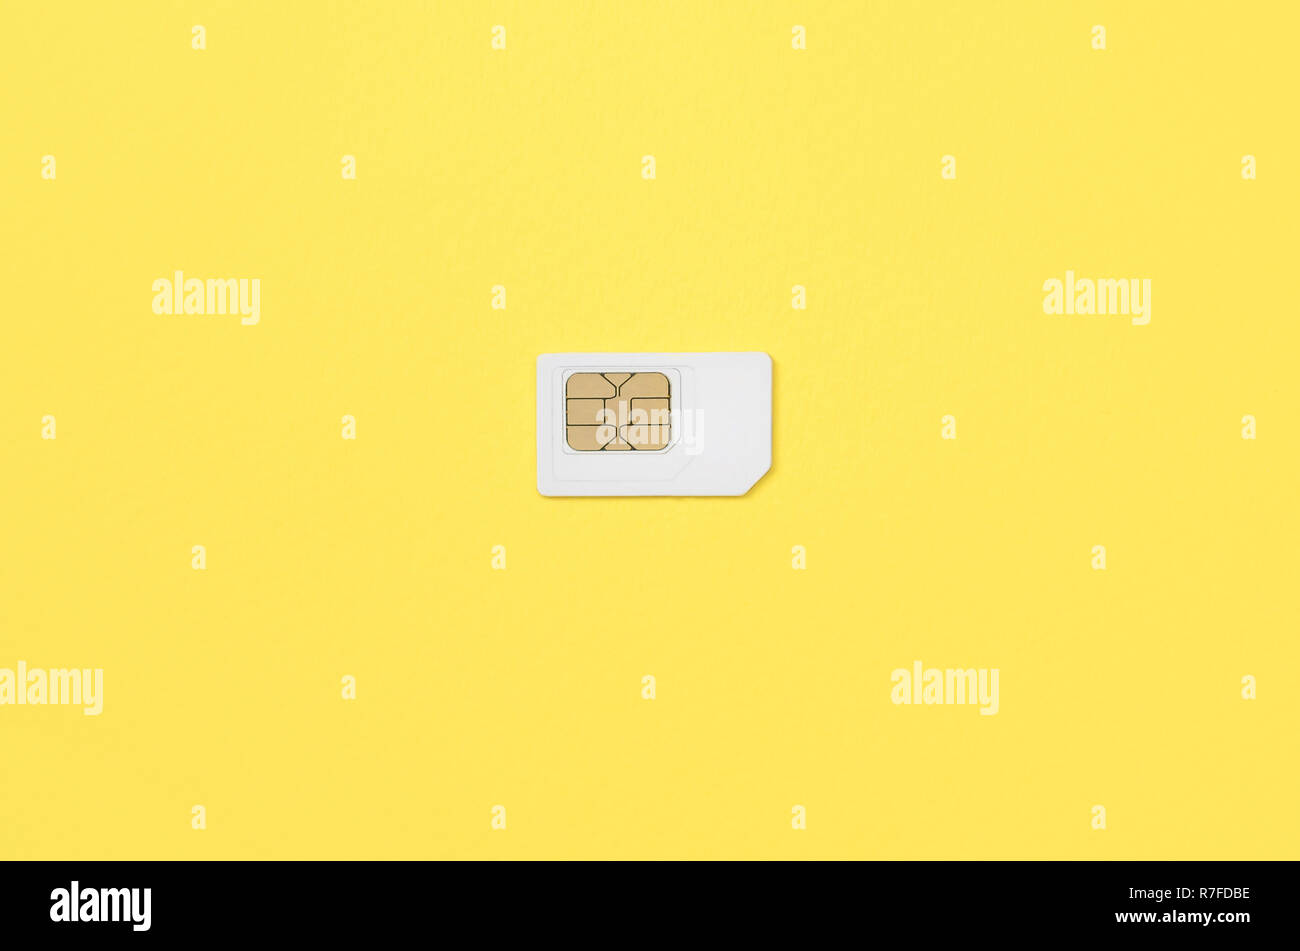 Subscriber identity module. New white SIM card on bright yellow color background. Minimal flat lay top view - Stock Image